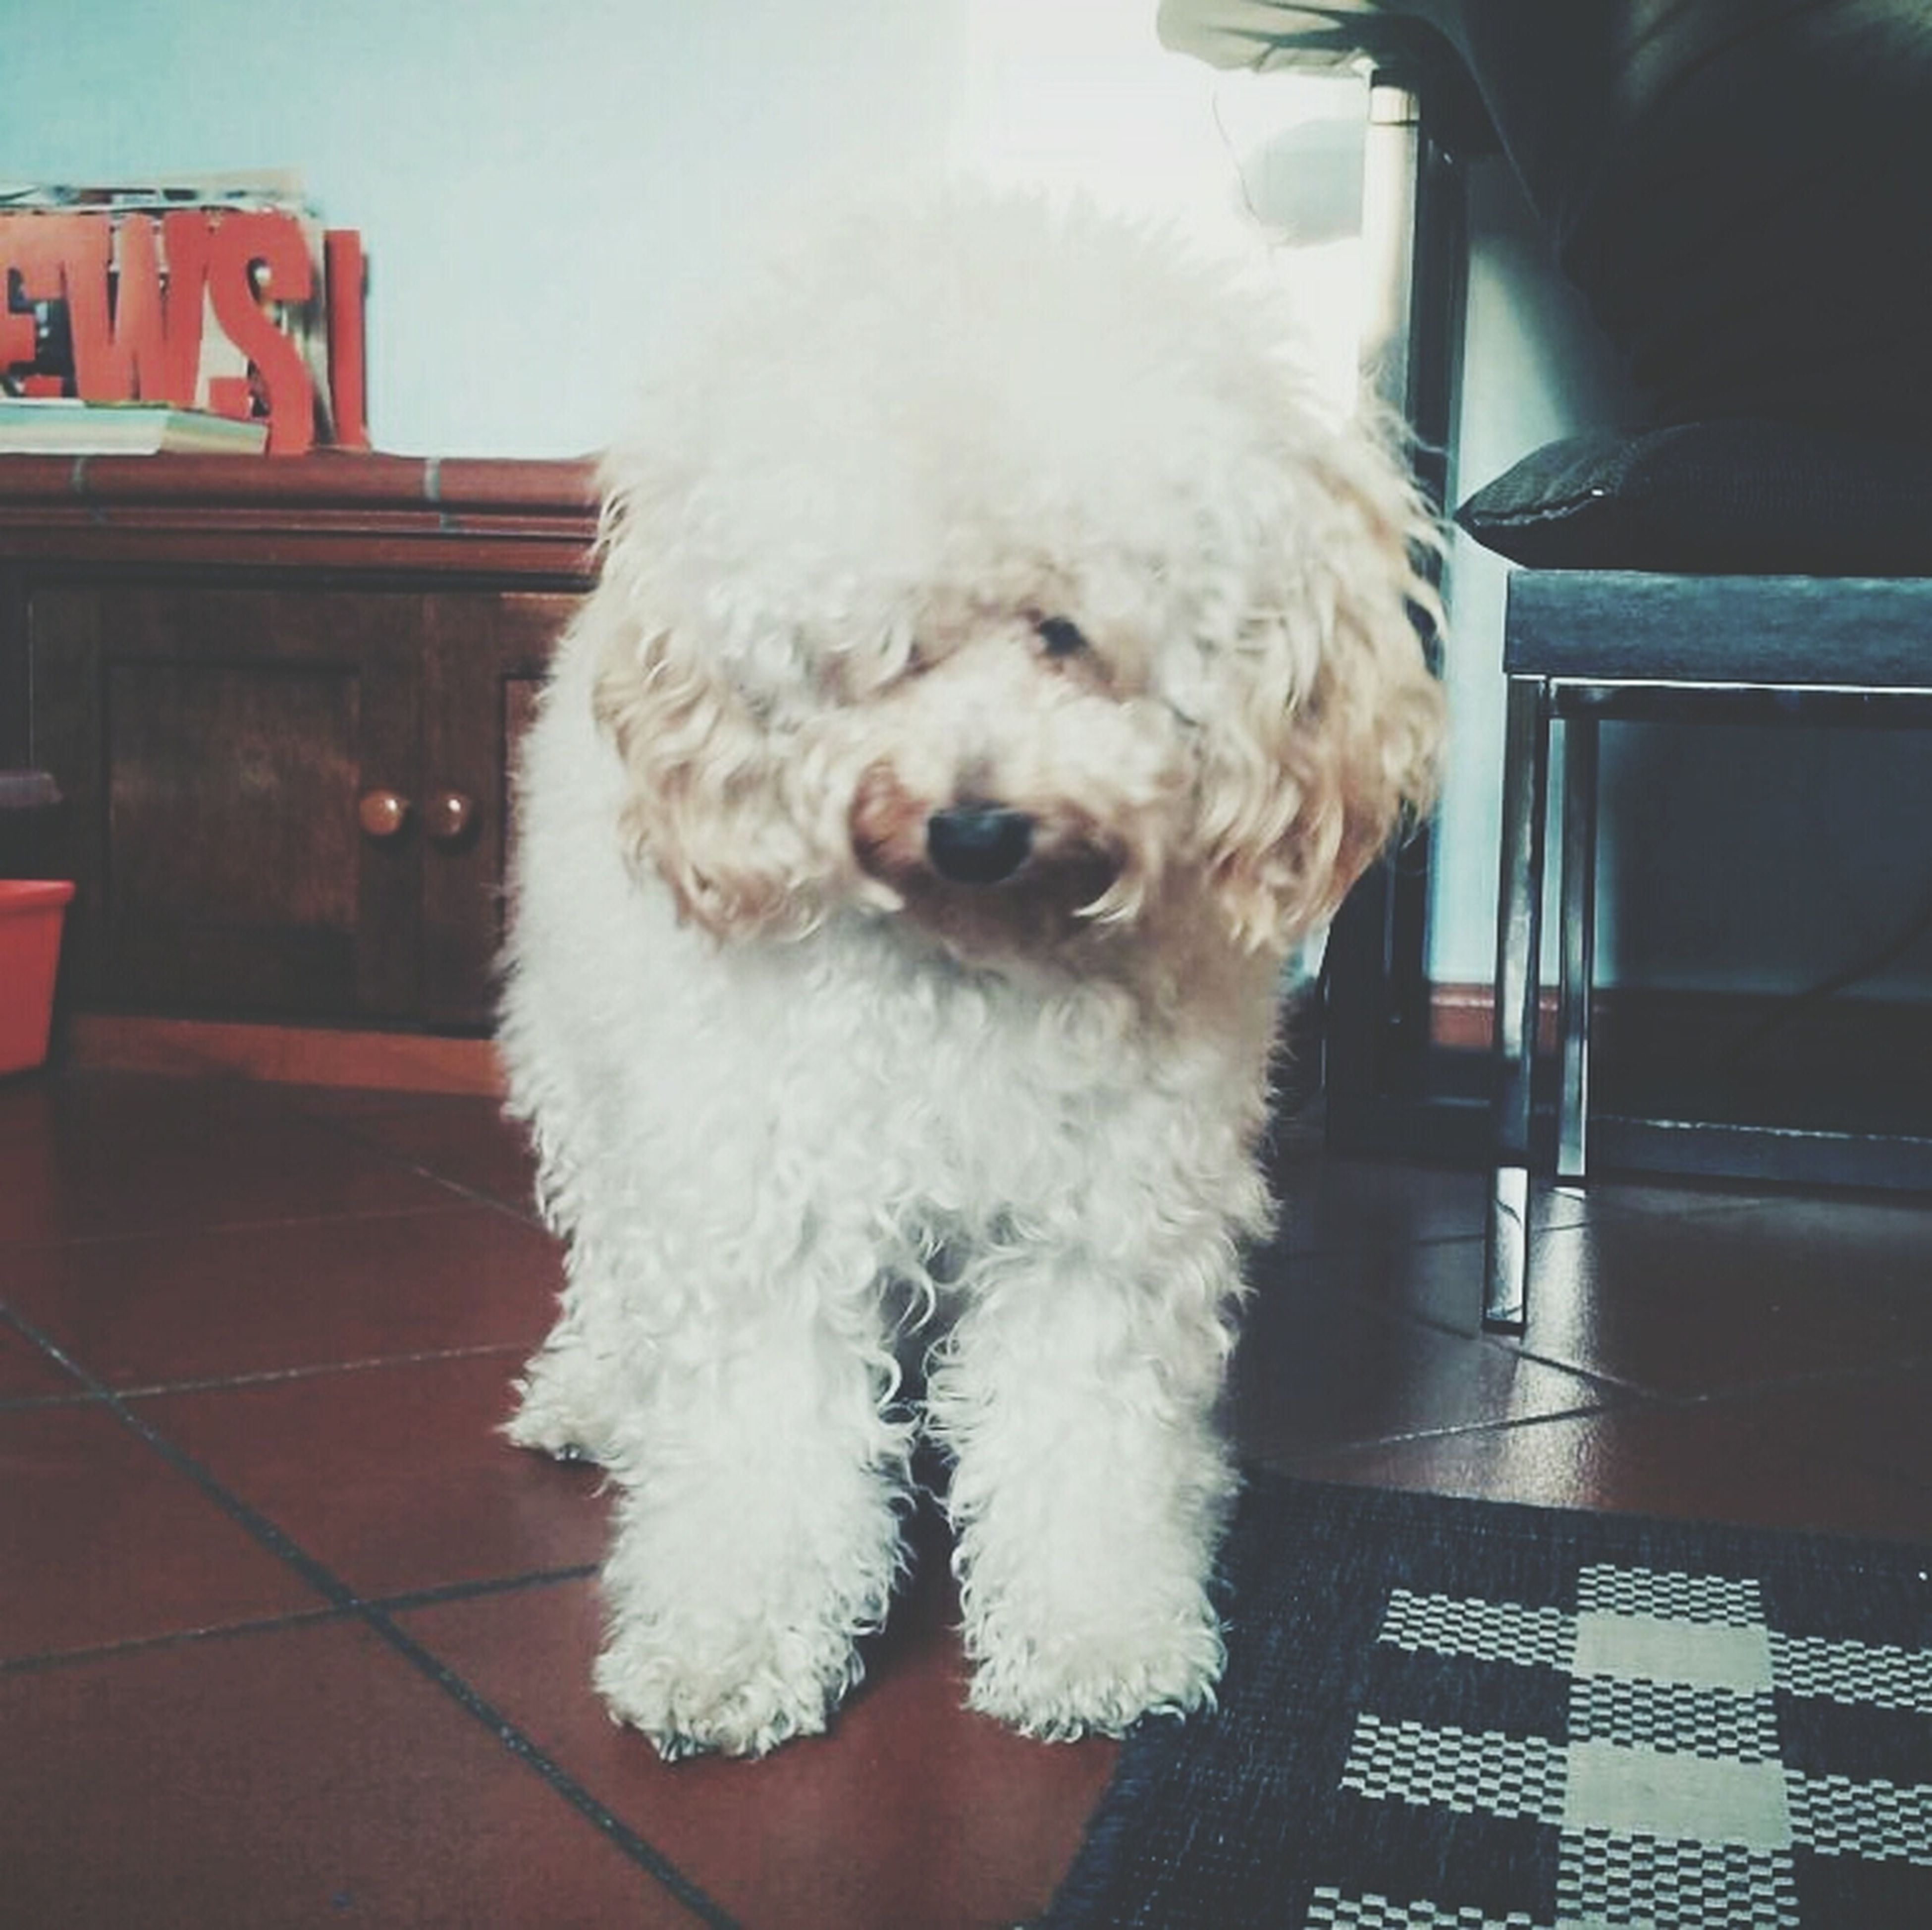 domestic animals, pets, one animal, animal themes, mammal, dog, white color, animal hair, close-up, animal head, indoors, no people, looking away, day, front view, built structure, building exterior, house, architecture